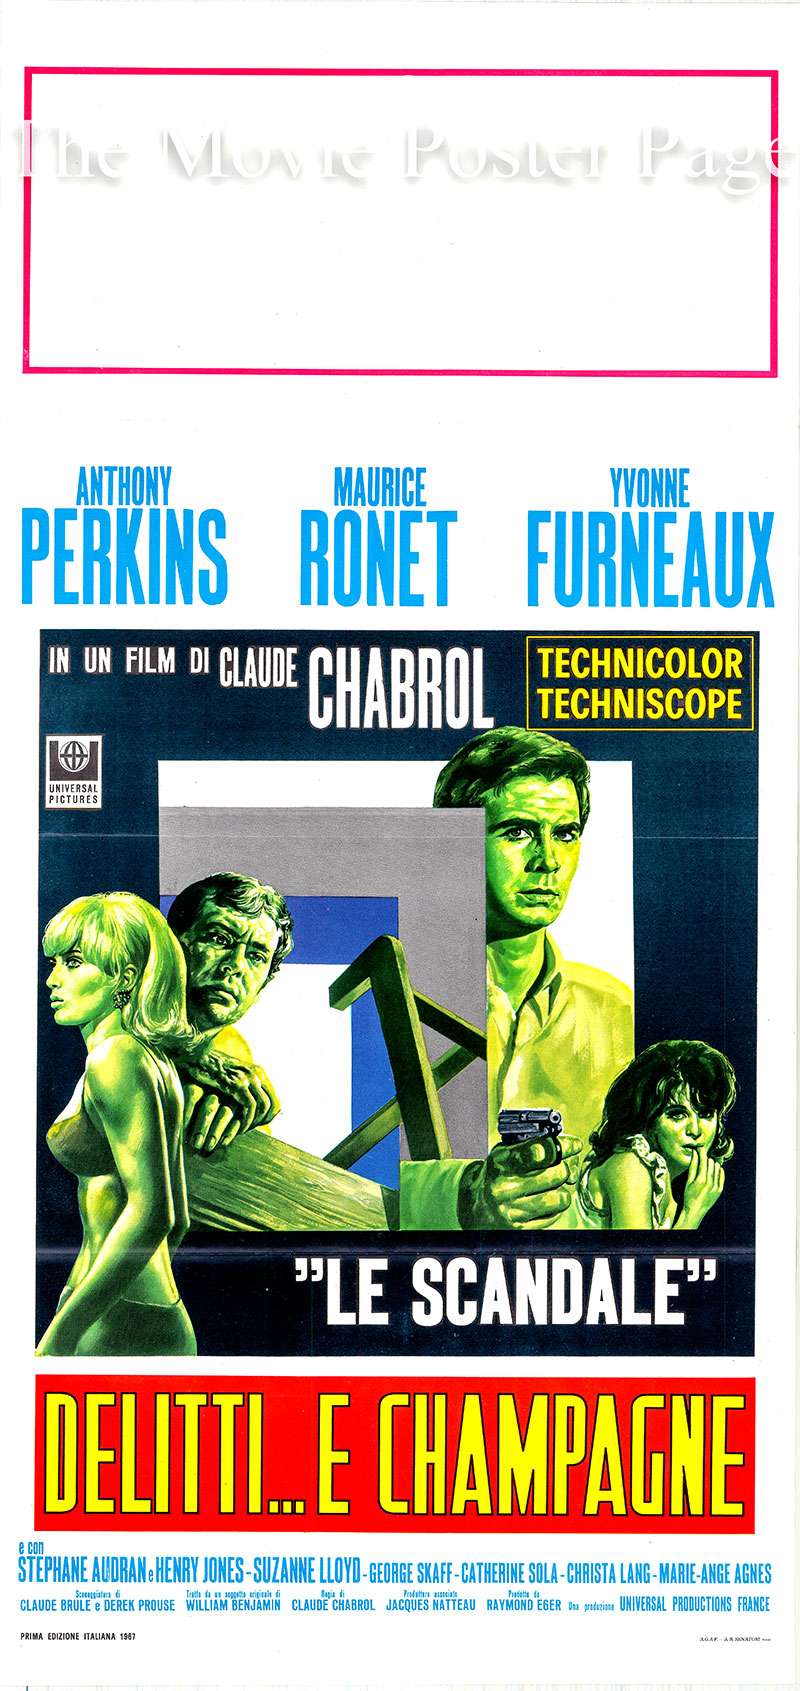 Pictured is an Italian locandina for the 1967 Claude Chabrol film Le Scandale starring Anthony Perkins as Christoper.